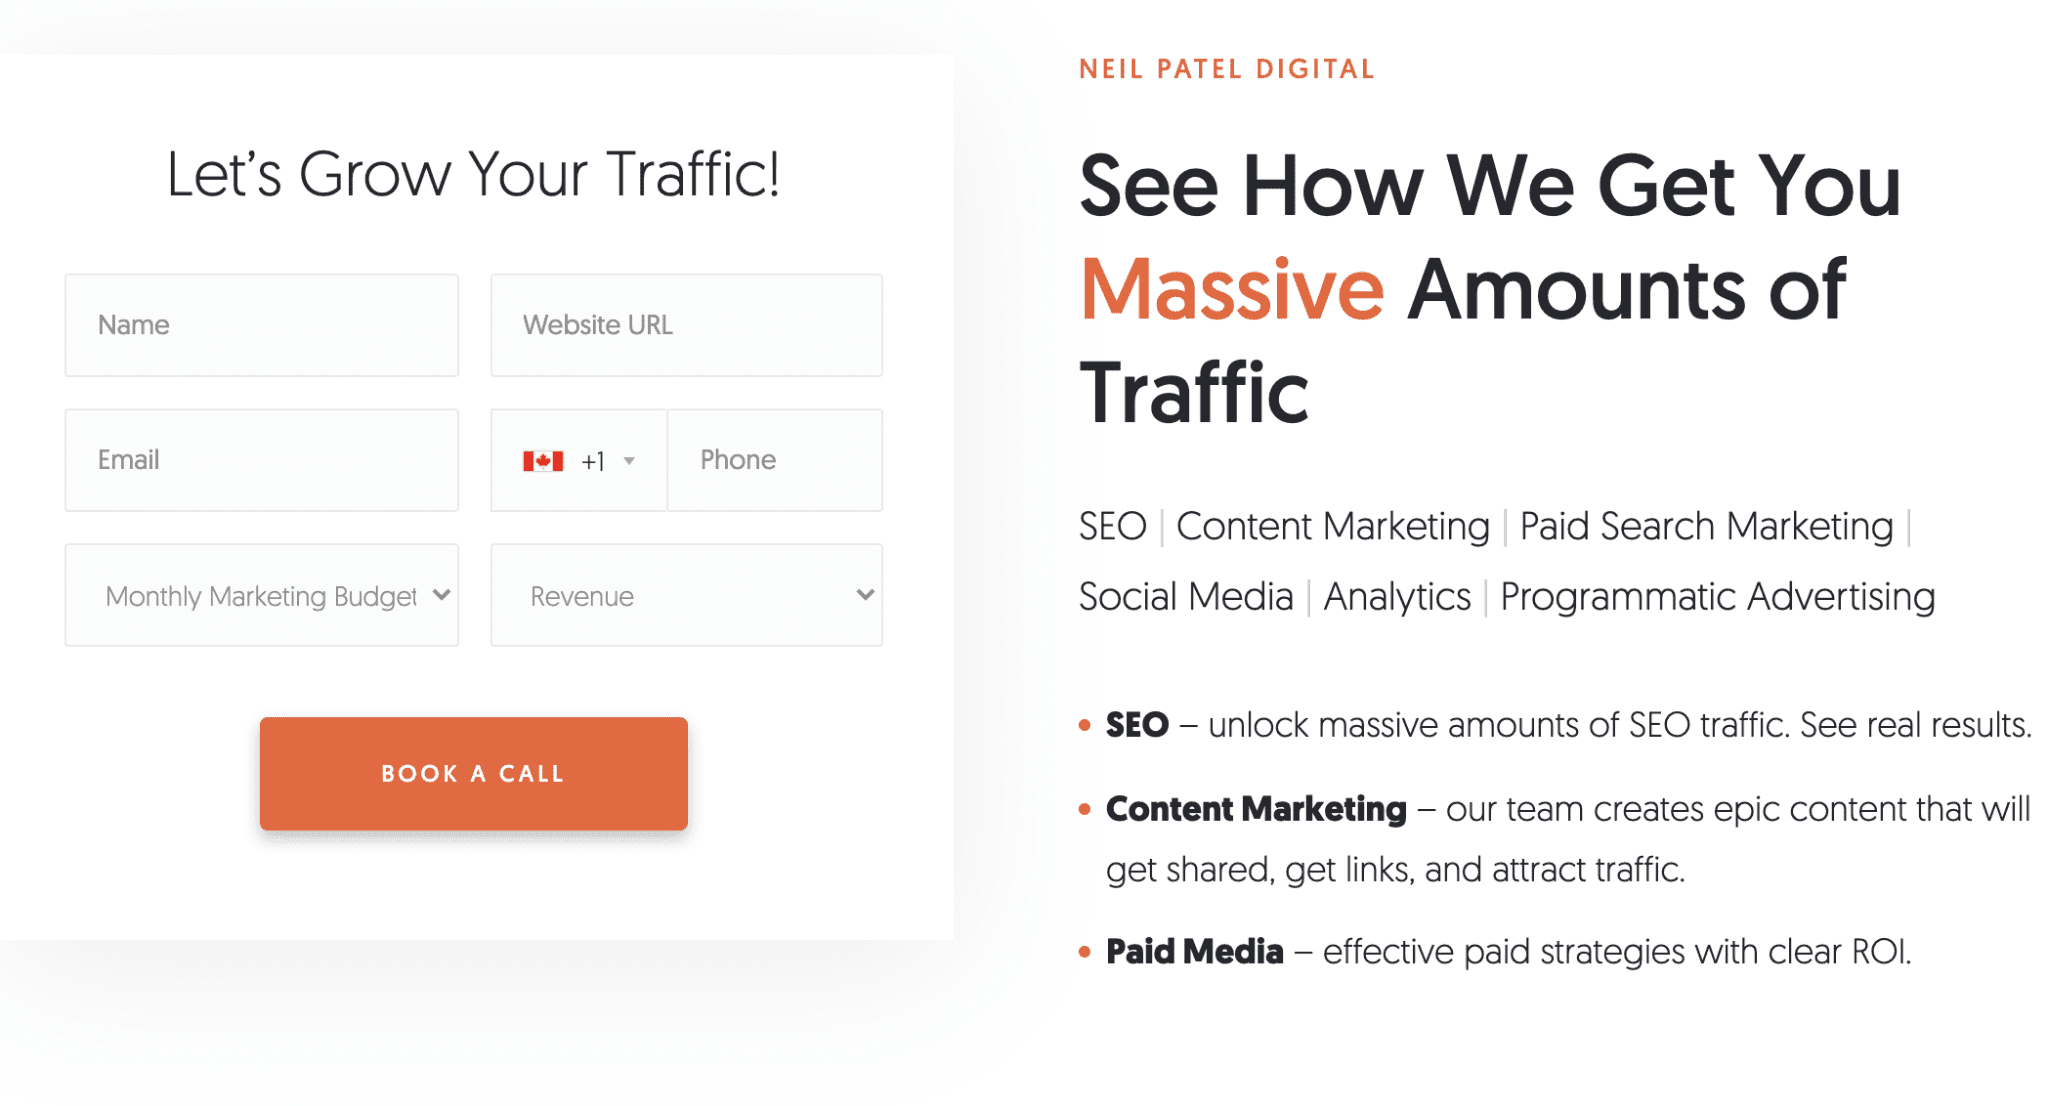 Screenshot of Neil Patel's consultation services form to grow traffic